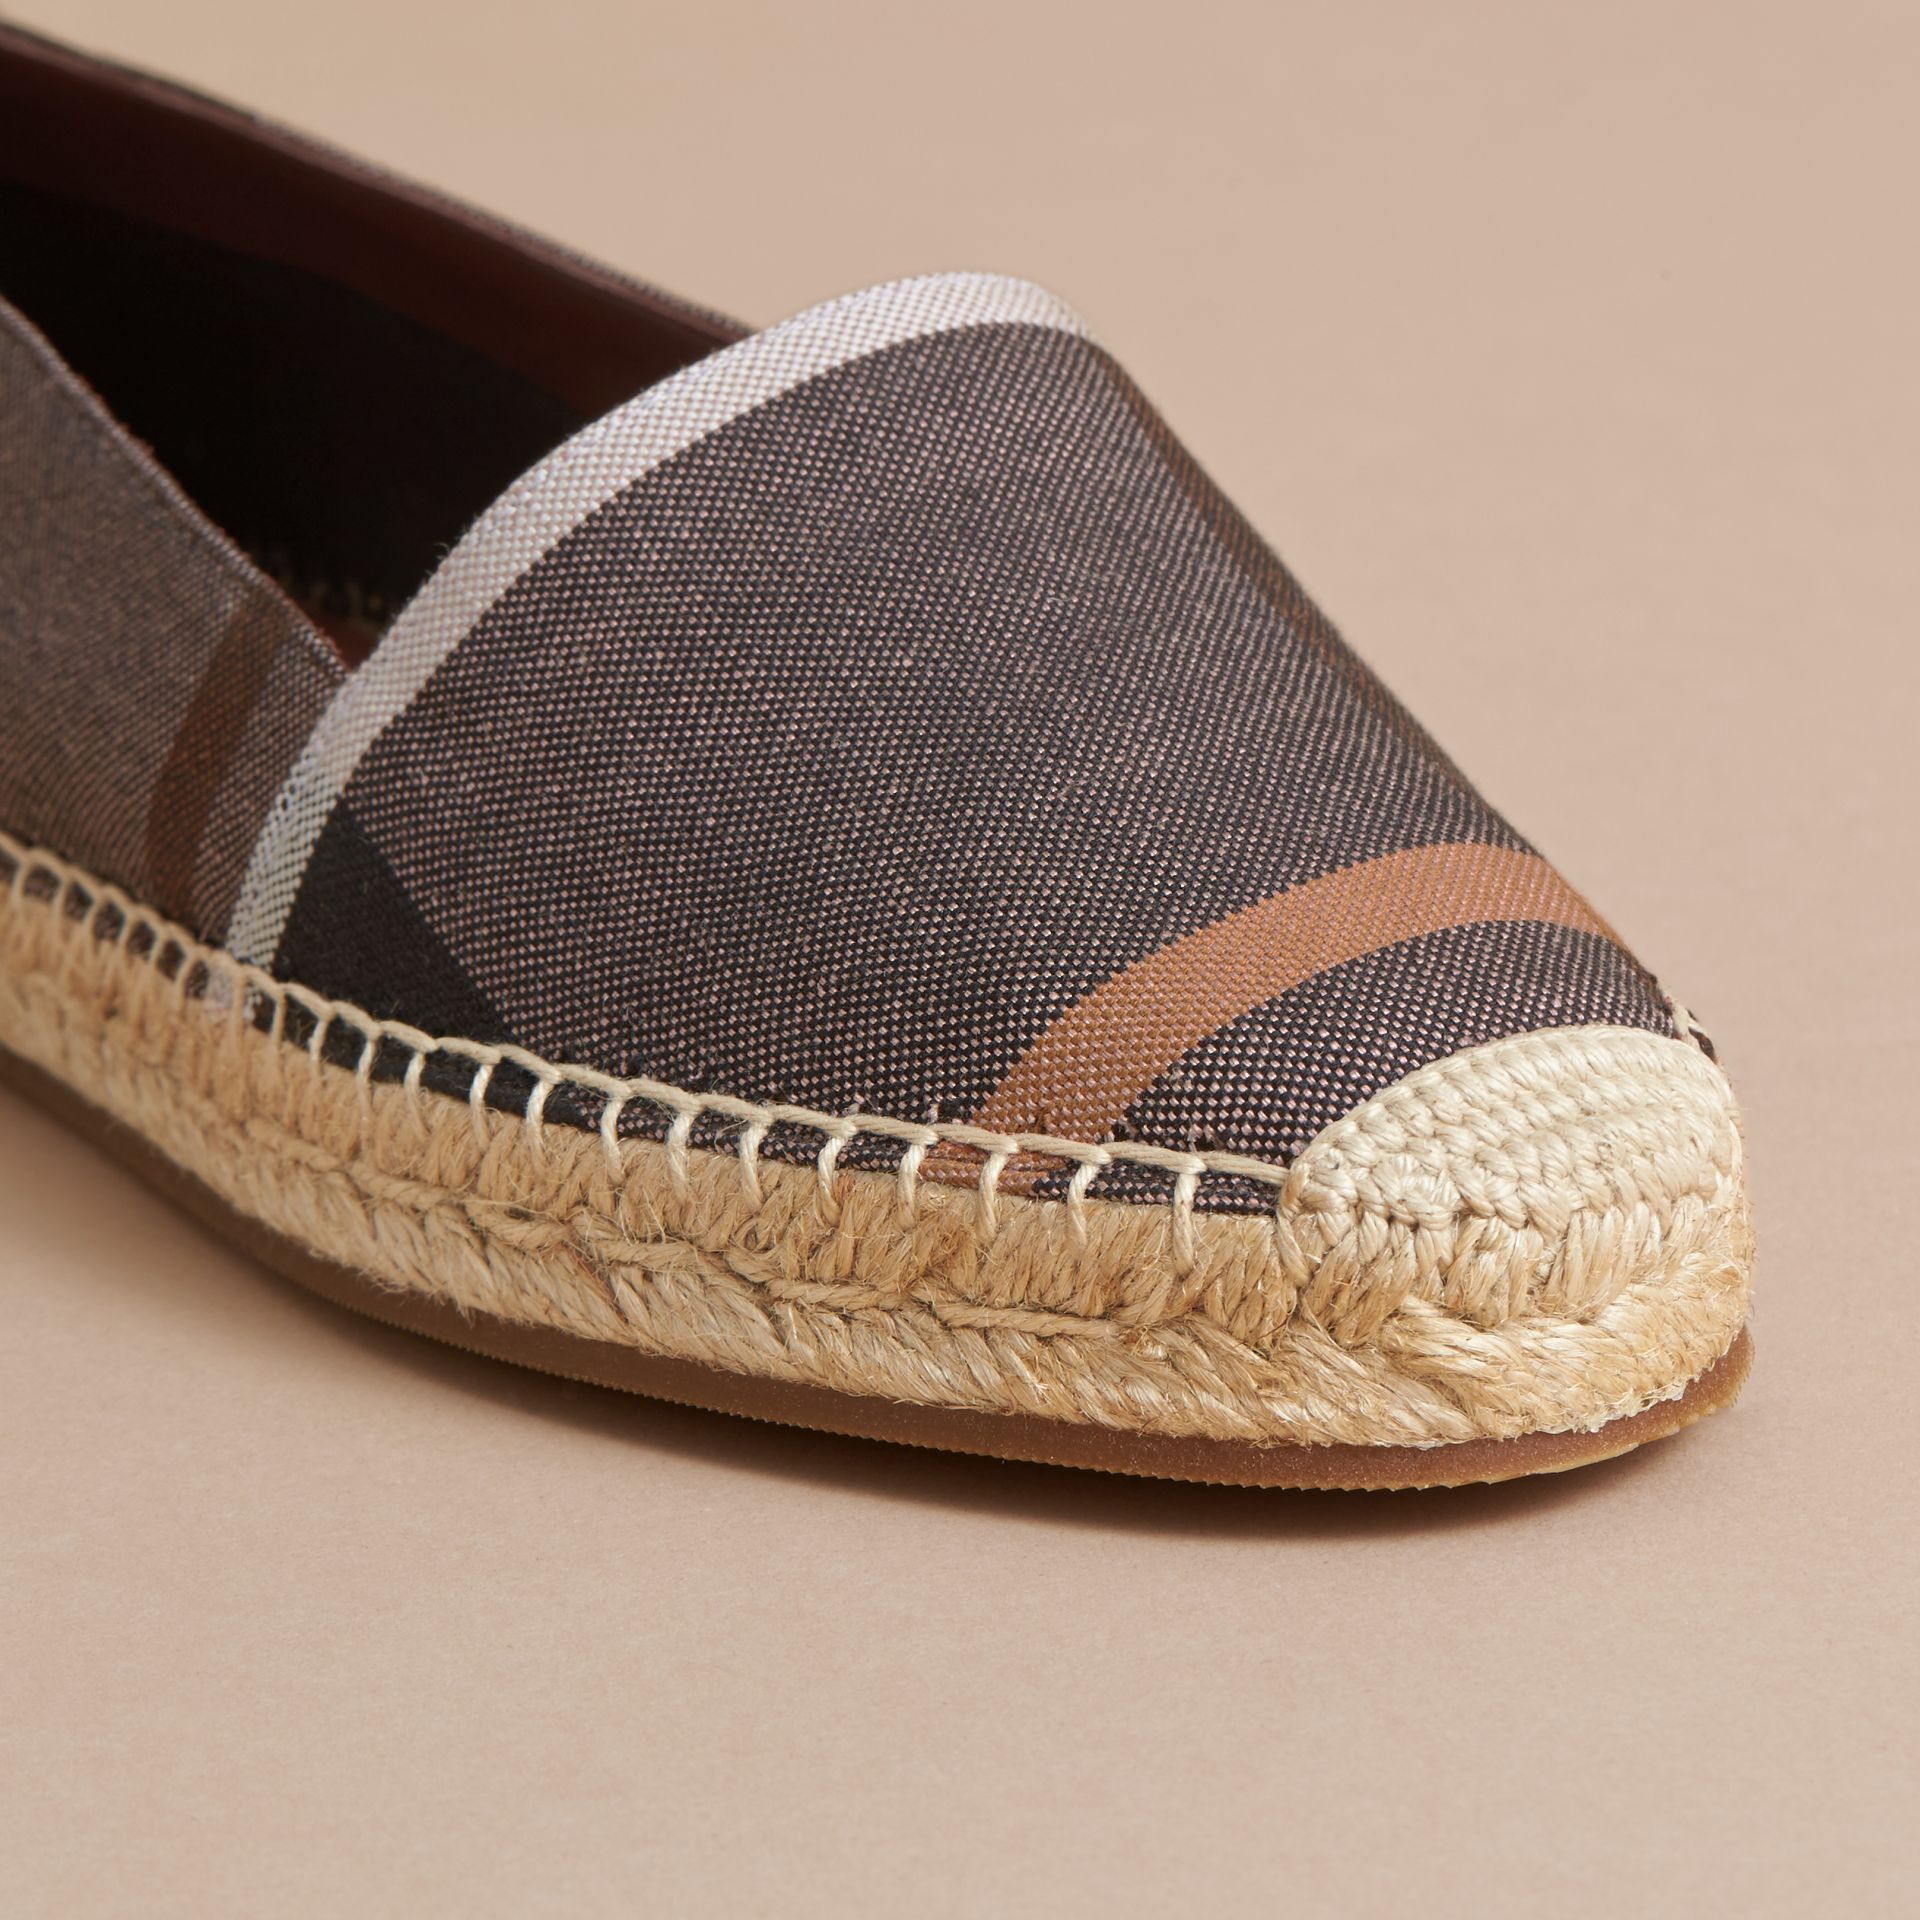 Check Linen Cotton Espadrilles in Cerise Purple - Women | Burberry United Kingdom - gallery image 1